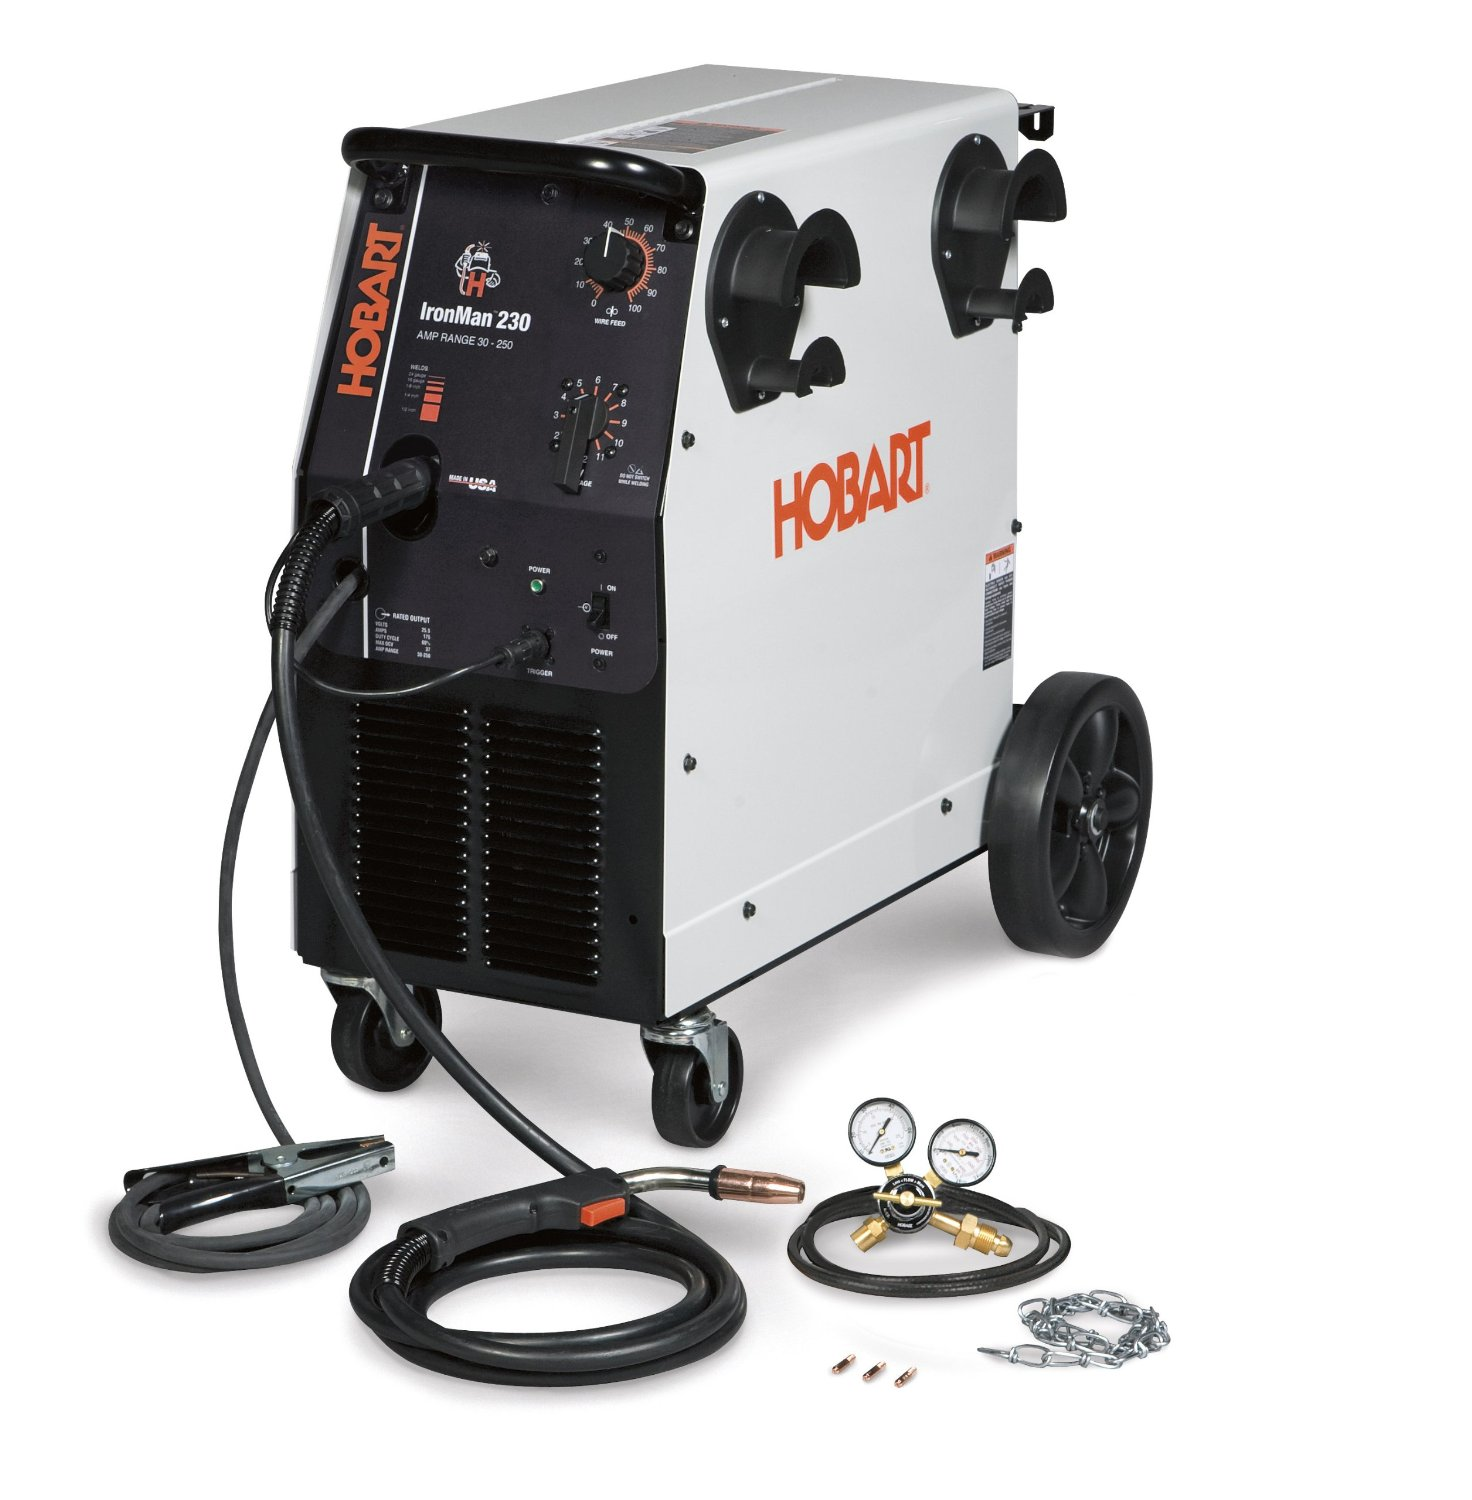 Hobart Ironman 230 Review - Best 250 AMP MIG Welder 2018